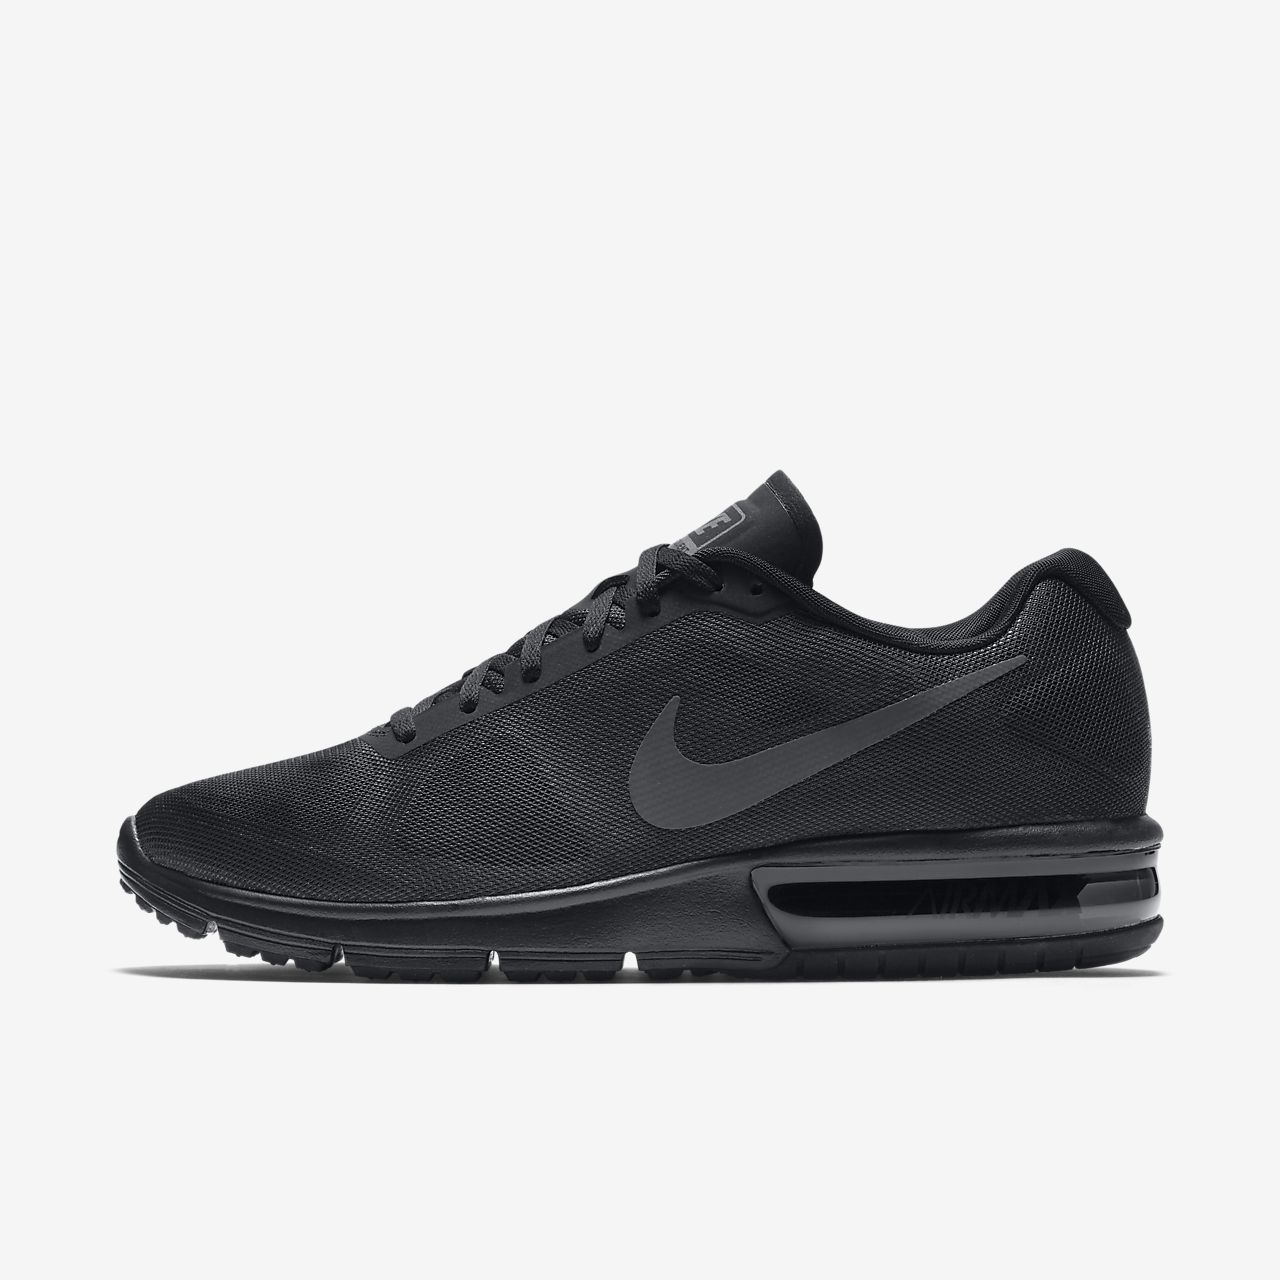 ... Nike Air Max Sequent Men's Running Shoe